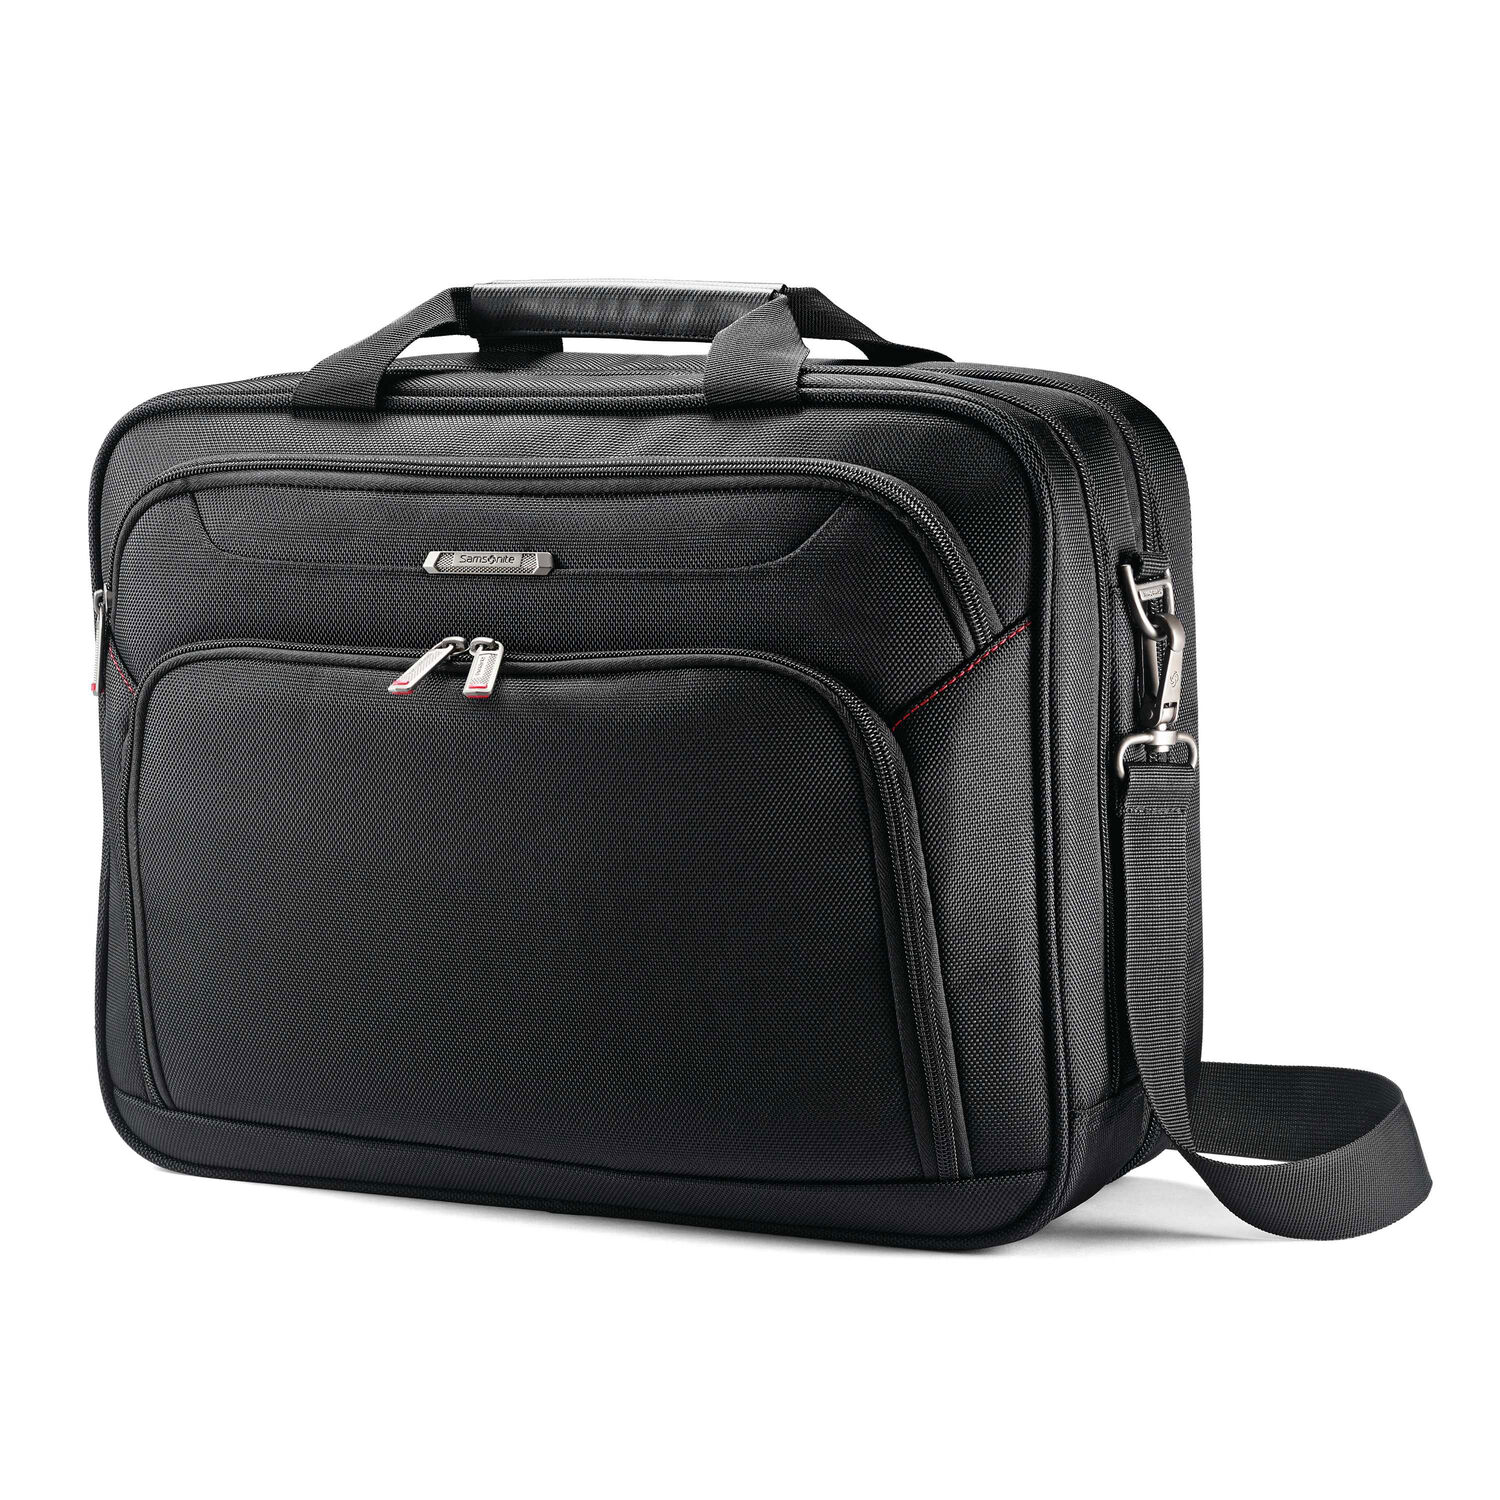 About Samsonite Samsonite was founded by Jesse Shwayder in the year It is today world's largest travel luggage company, manufacturing luggage bags, business bags, laptop cases, backpacks and more. Its products are sold in over countries. In , Samsonite acquired American Tourister, another leading travel luggage brand.